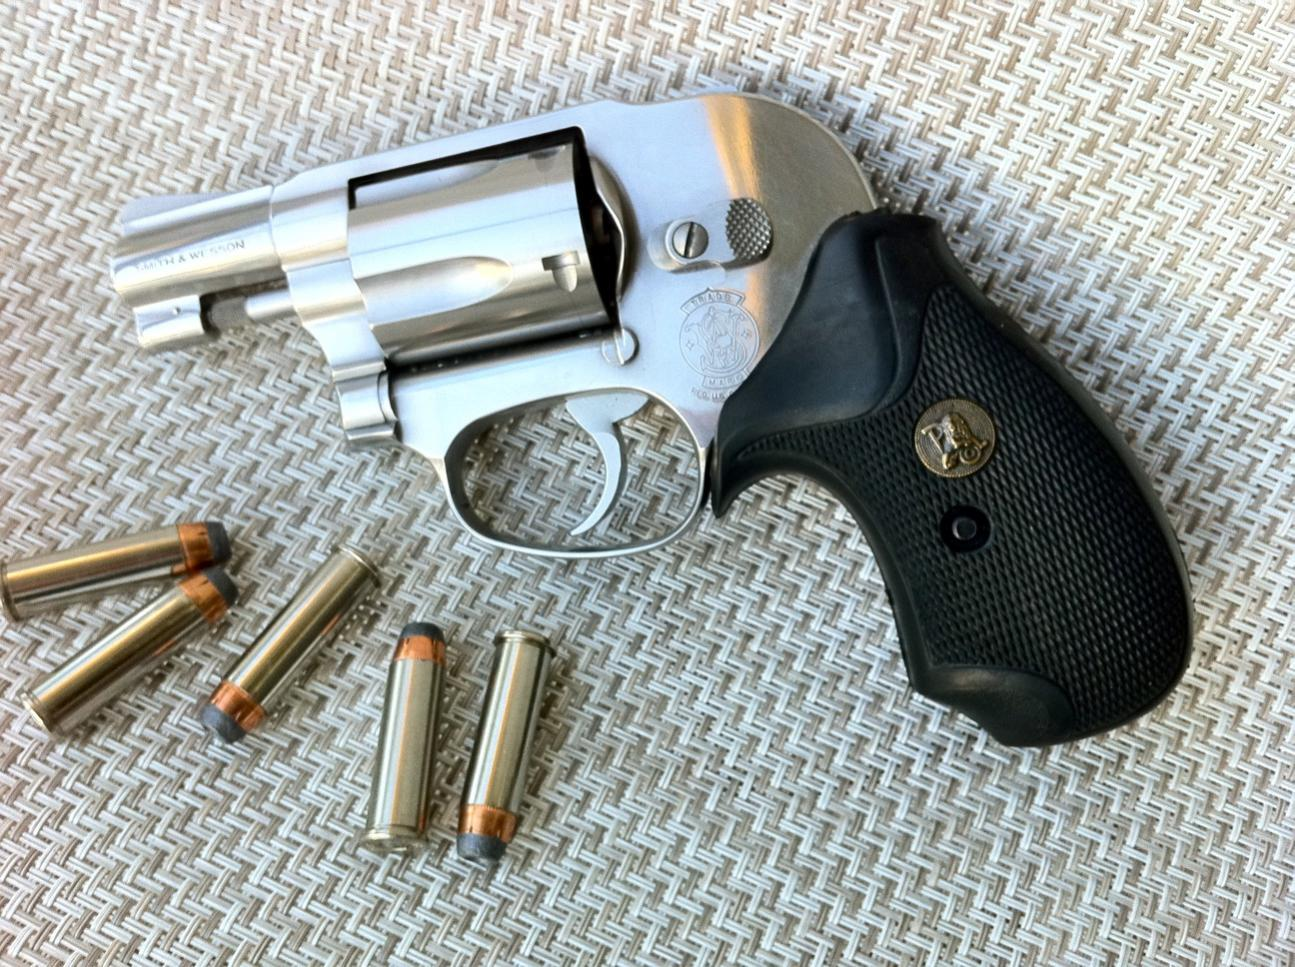 Smith & Wesson 642 recoil-photo.jpg